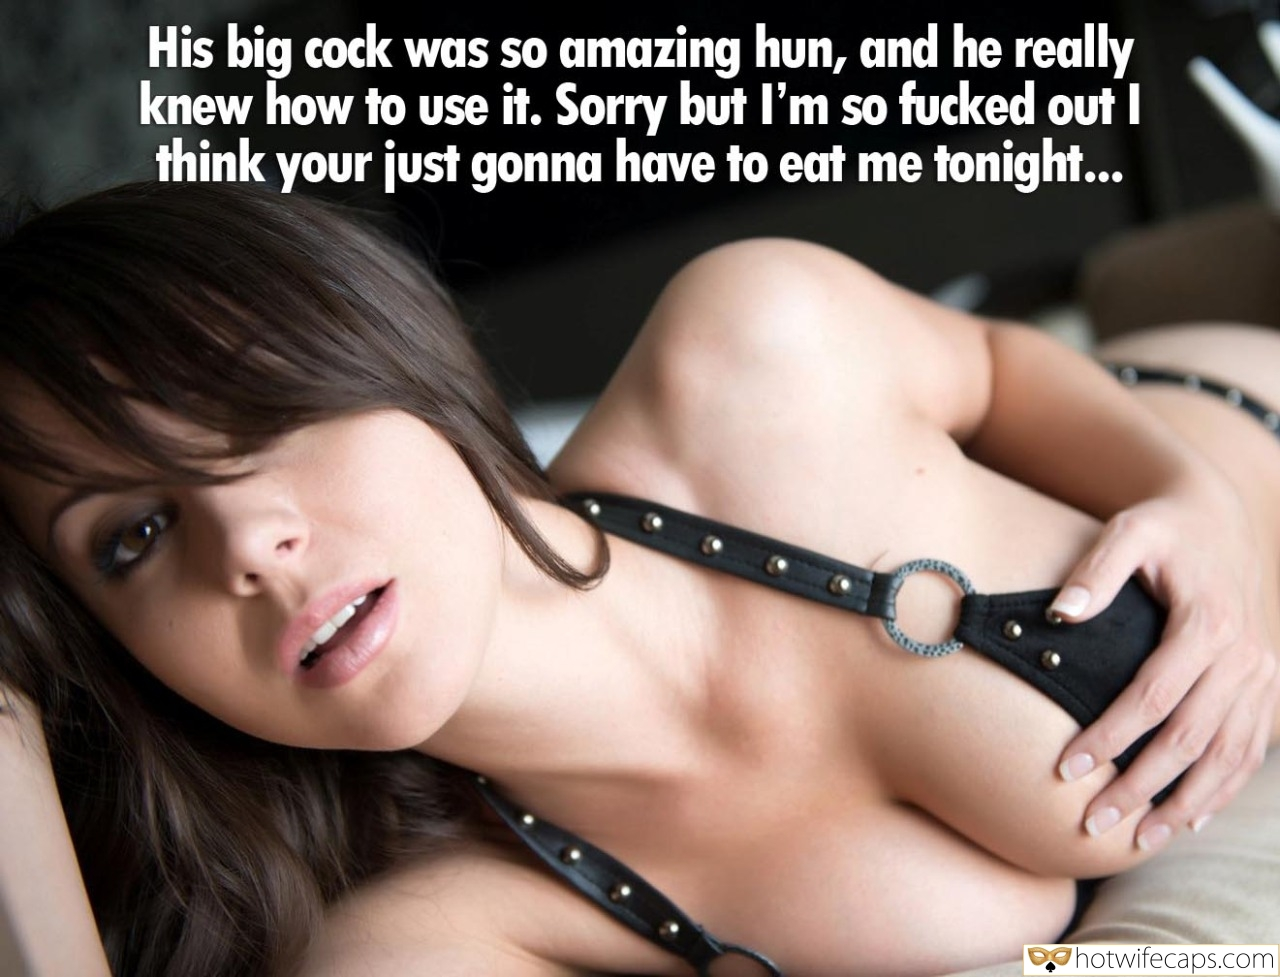 SFW Caps Dirty Talk  hotwife caption: His big cock was so amazing hun, and he really knew how to use it. Sorry but l'm so fucked out I think your just gonna have to eat me tonight… Big Boobed Wife Loves Flerting on Cam